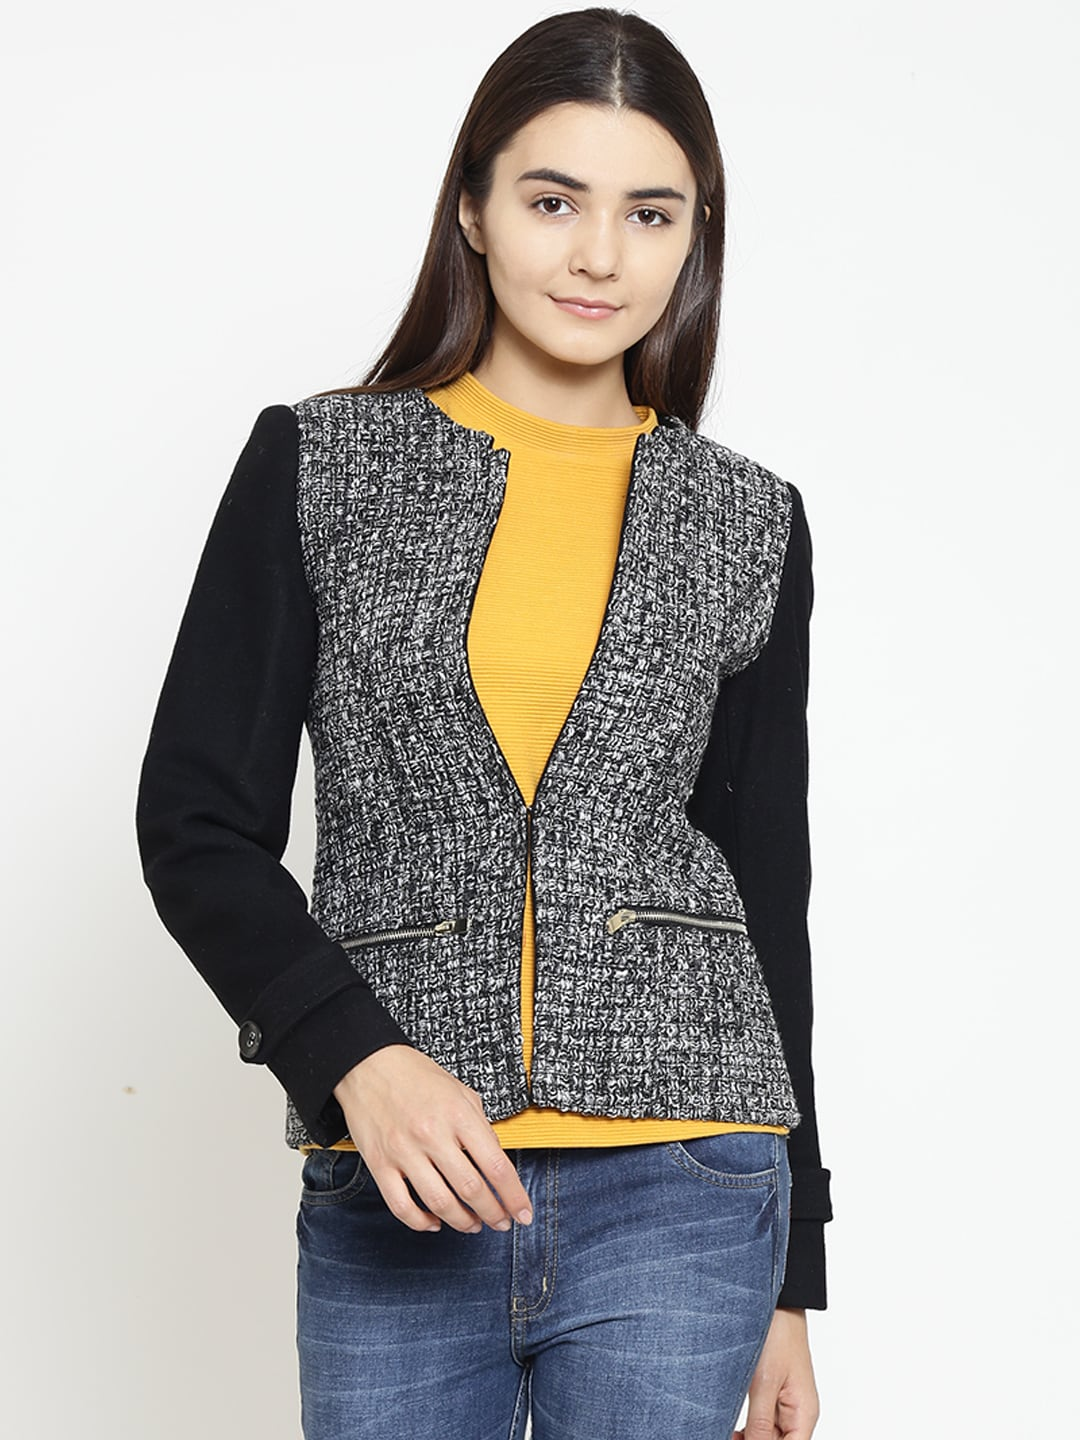 c8c468310a4 Madame Store - Buy Women Clothing at Madame Online Store